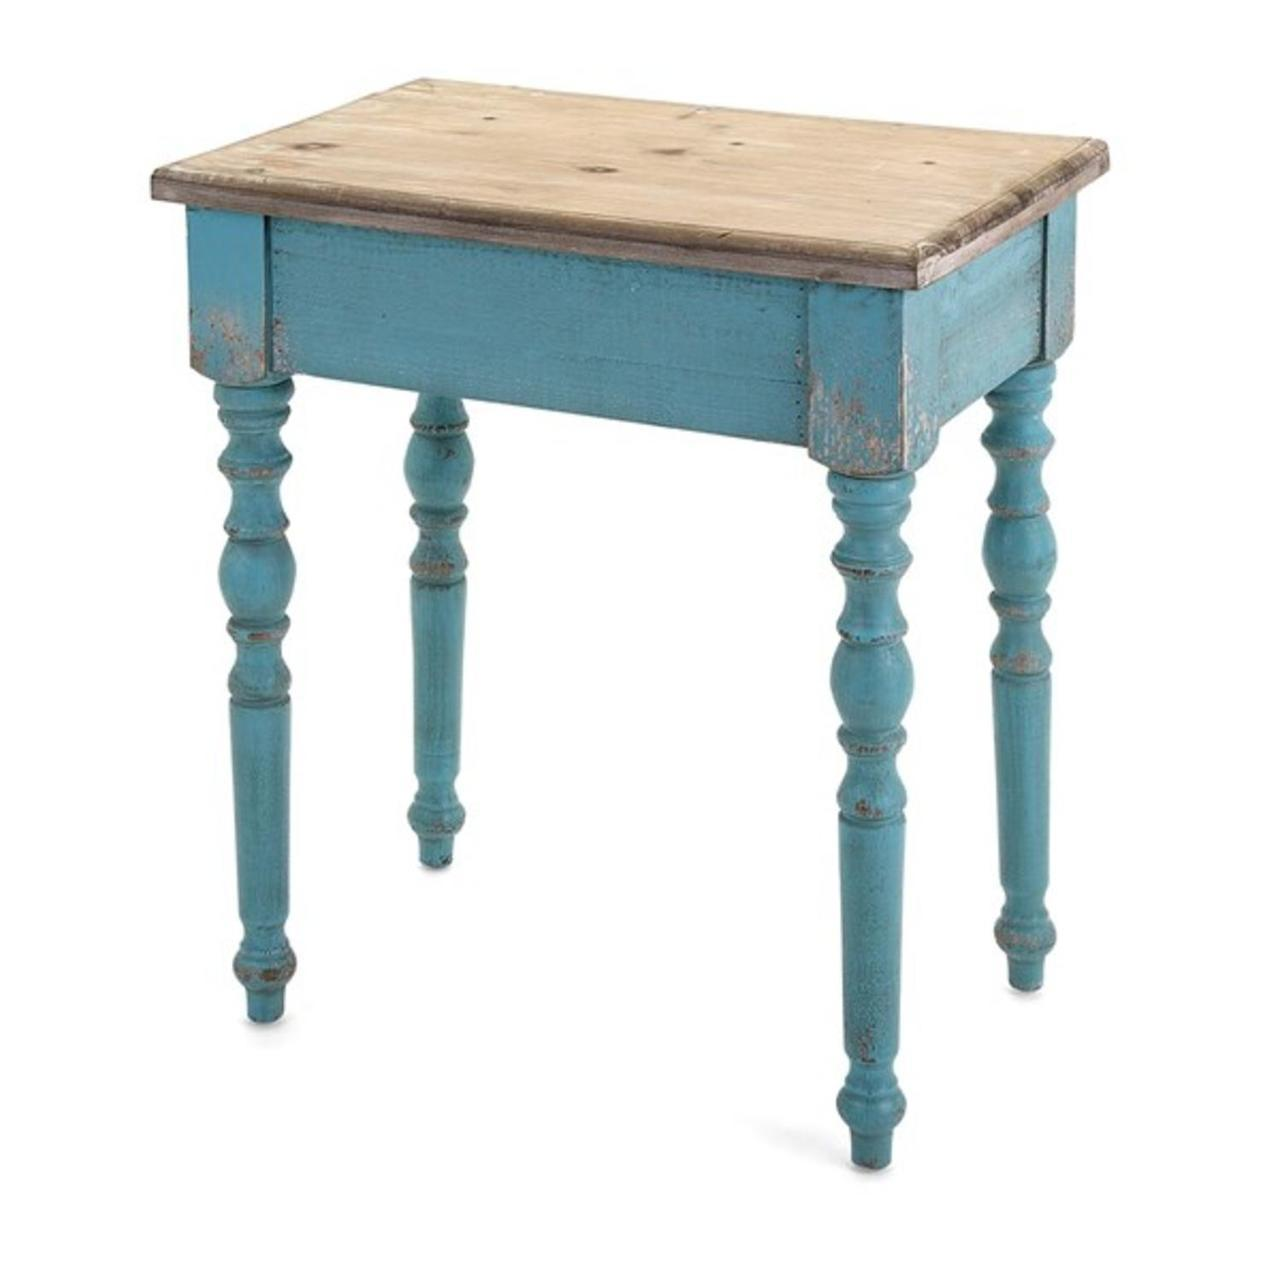 dark aqua blue and light sandy brown distressed fir decorative accent table west elm carpets wine cart clear acrylic outside patio furniture rustic white console round wood coffee